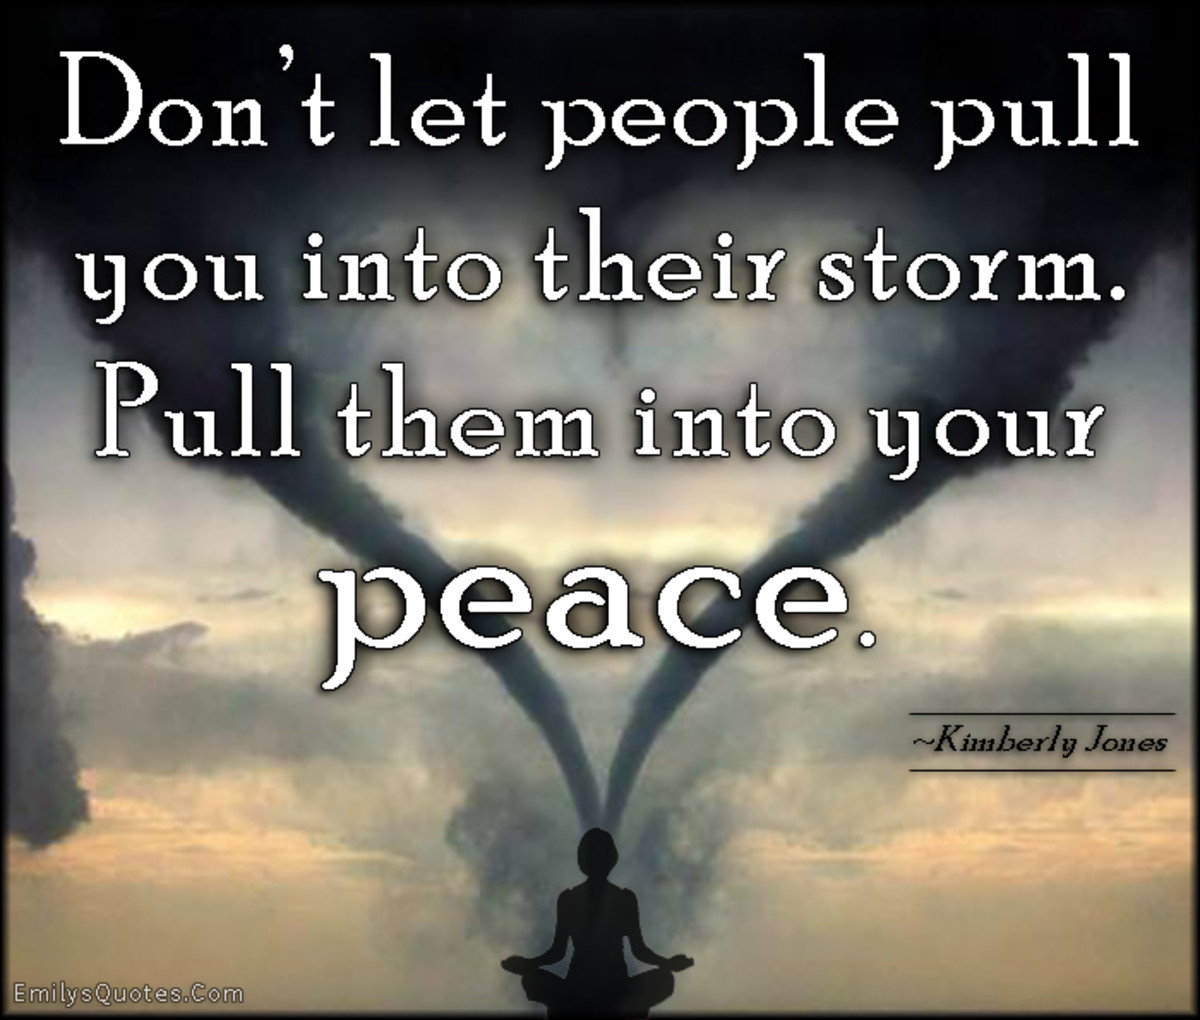 Don't let people pull you into their storm; pull them into your peace.